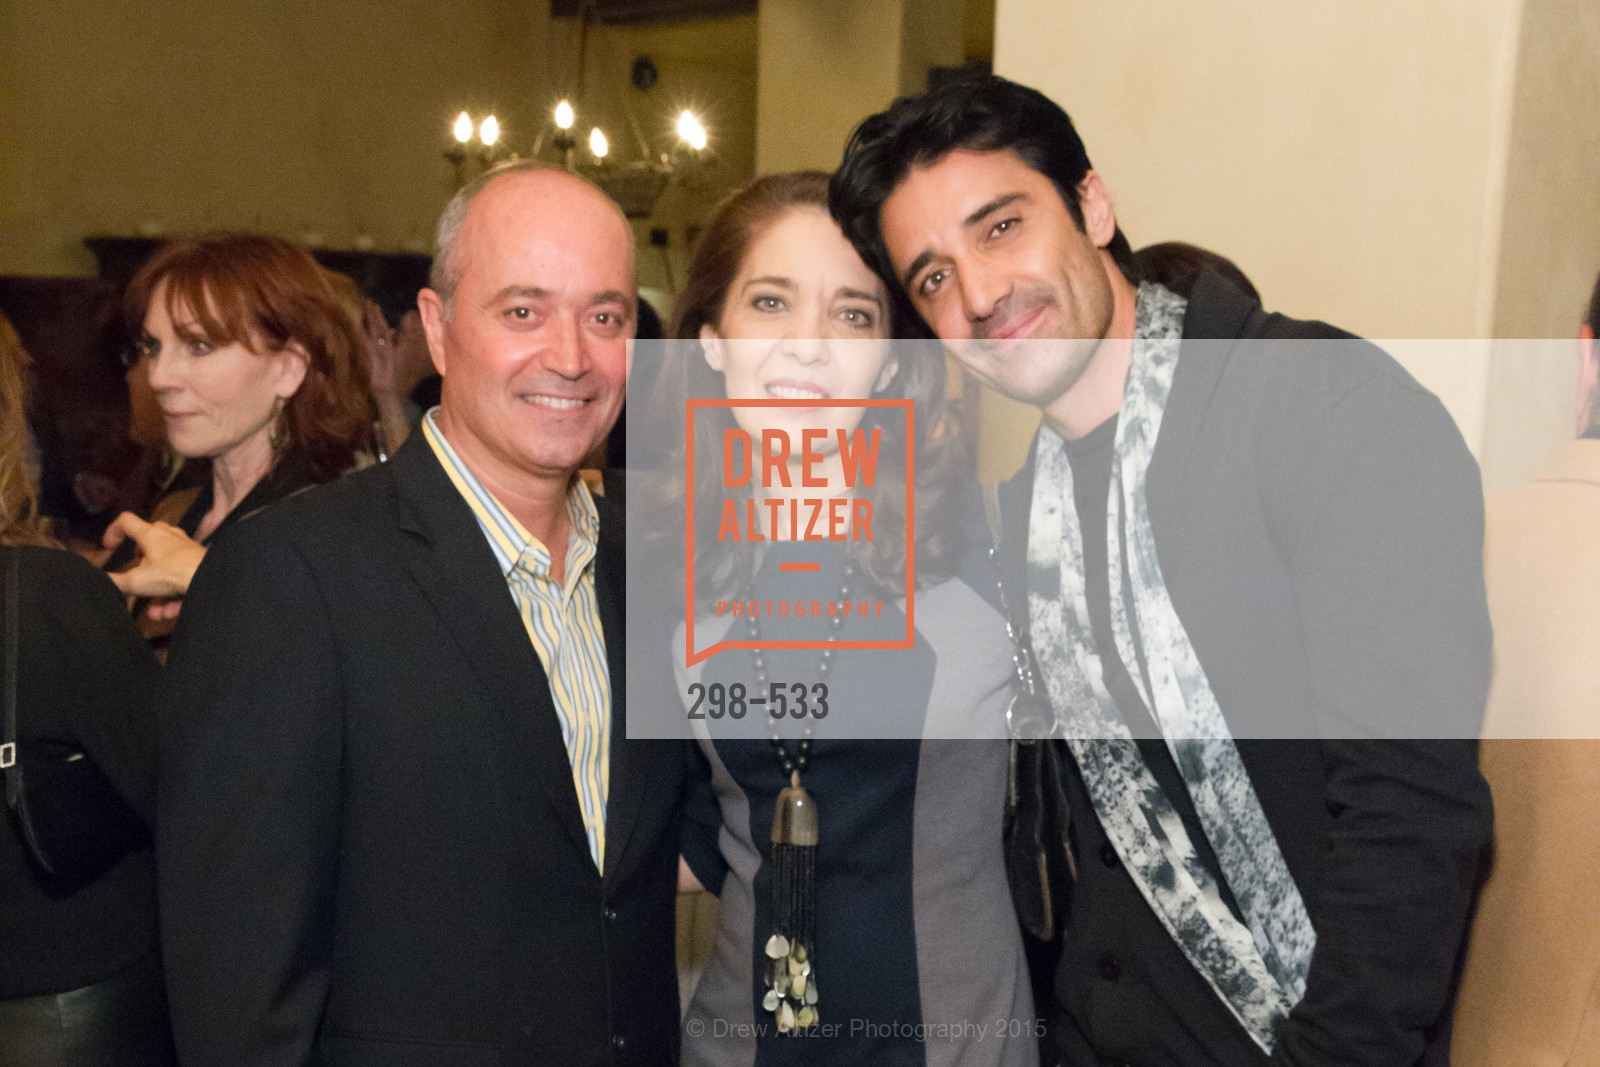 John Gumas, Elaine Alexopoulos, Gilles Marini, Hellenic Charity Ball Cocktail Reception, Kokkari. 200 Jackson St, San Francisco, CA 94111, November 13th, 2015,Drew Altizer, Drew Altizer Photography, full-service event agency, private events, San Francisco photographer, photographer California